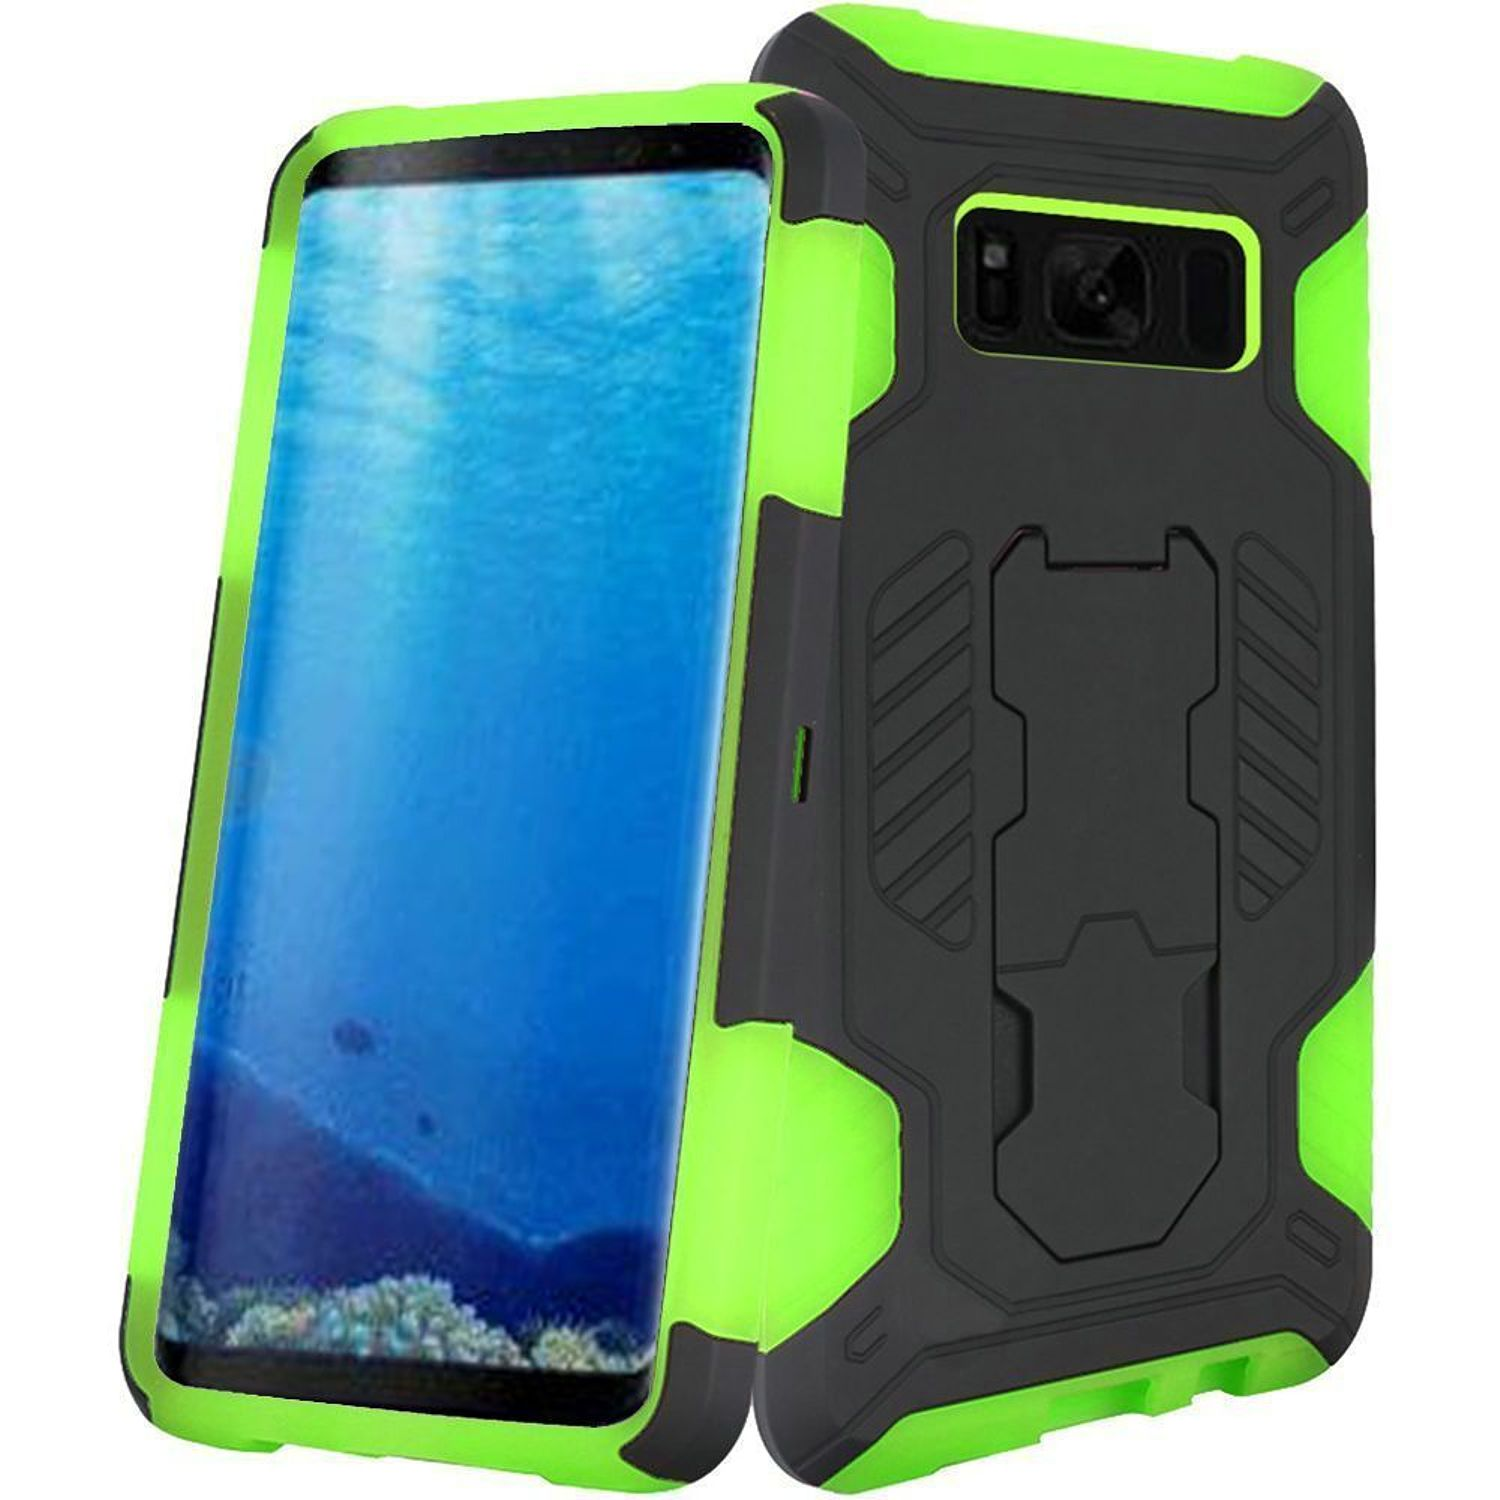 Insten SuperCoil Dual Layer [Shock Absorbing] Hybrid Stand Hard Snap-in Case Phone Cover For Samsung Galaxy S8, Black/Neon Green